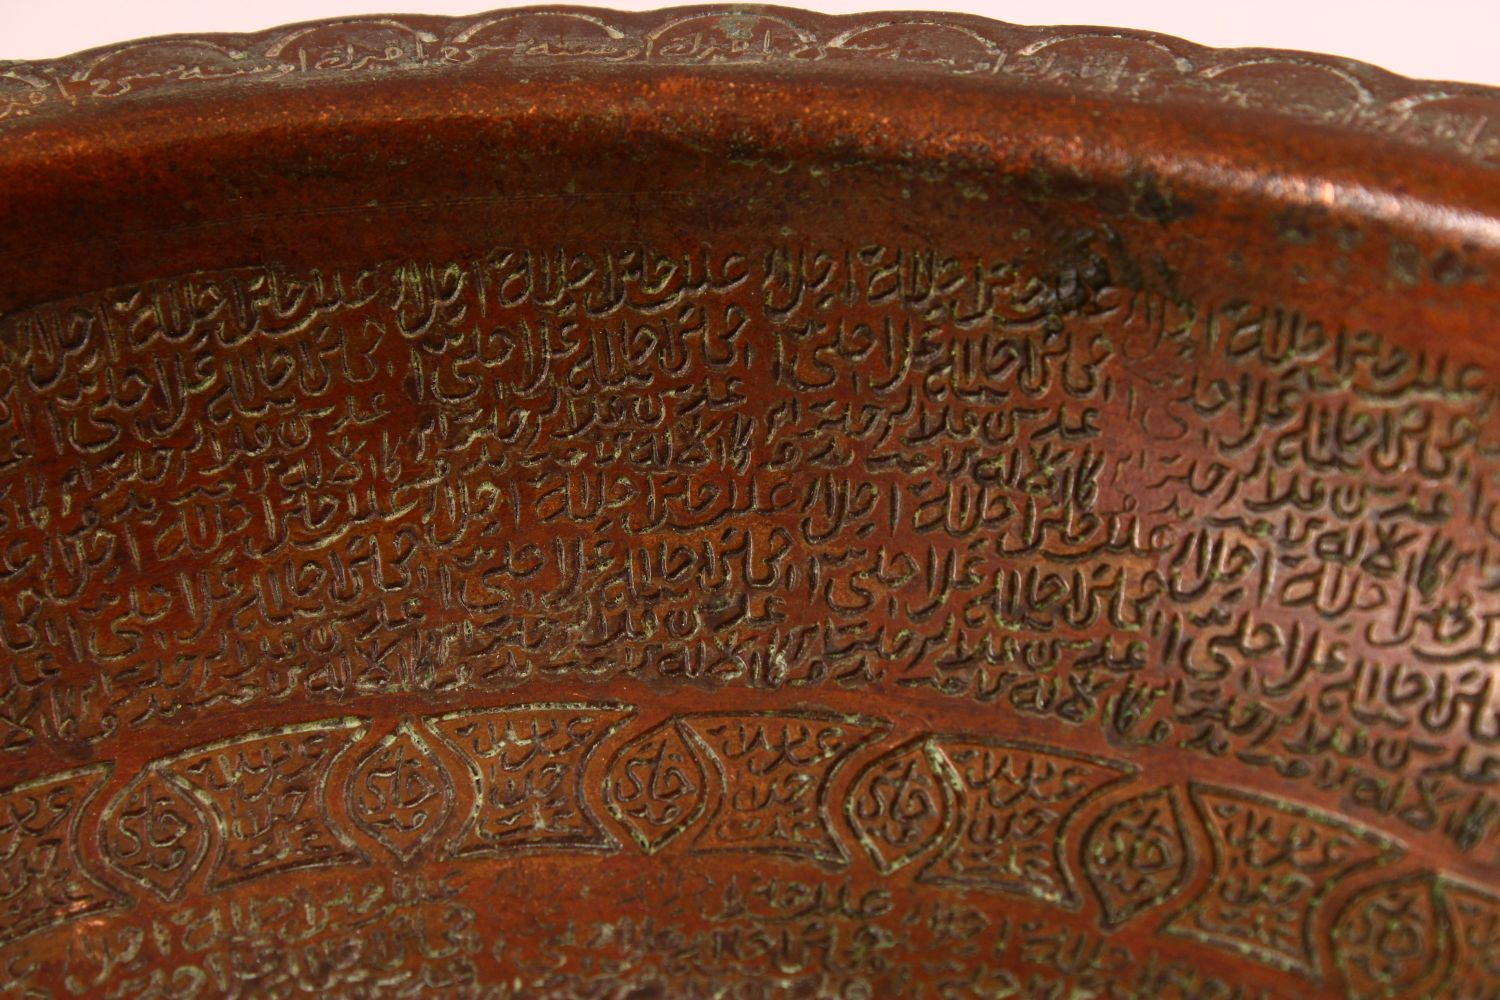 A GOOD PERSIAN ENGRAVED SIGNED BRASS MAGIC BOWL, the interior carved with a profuse amount of - Image 3 of 6